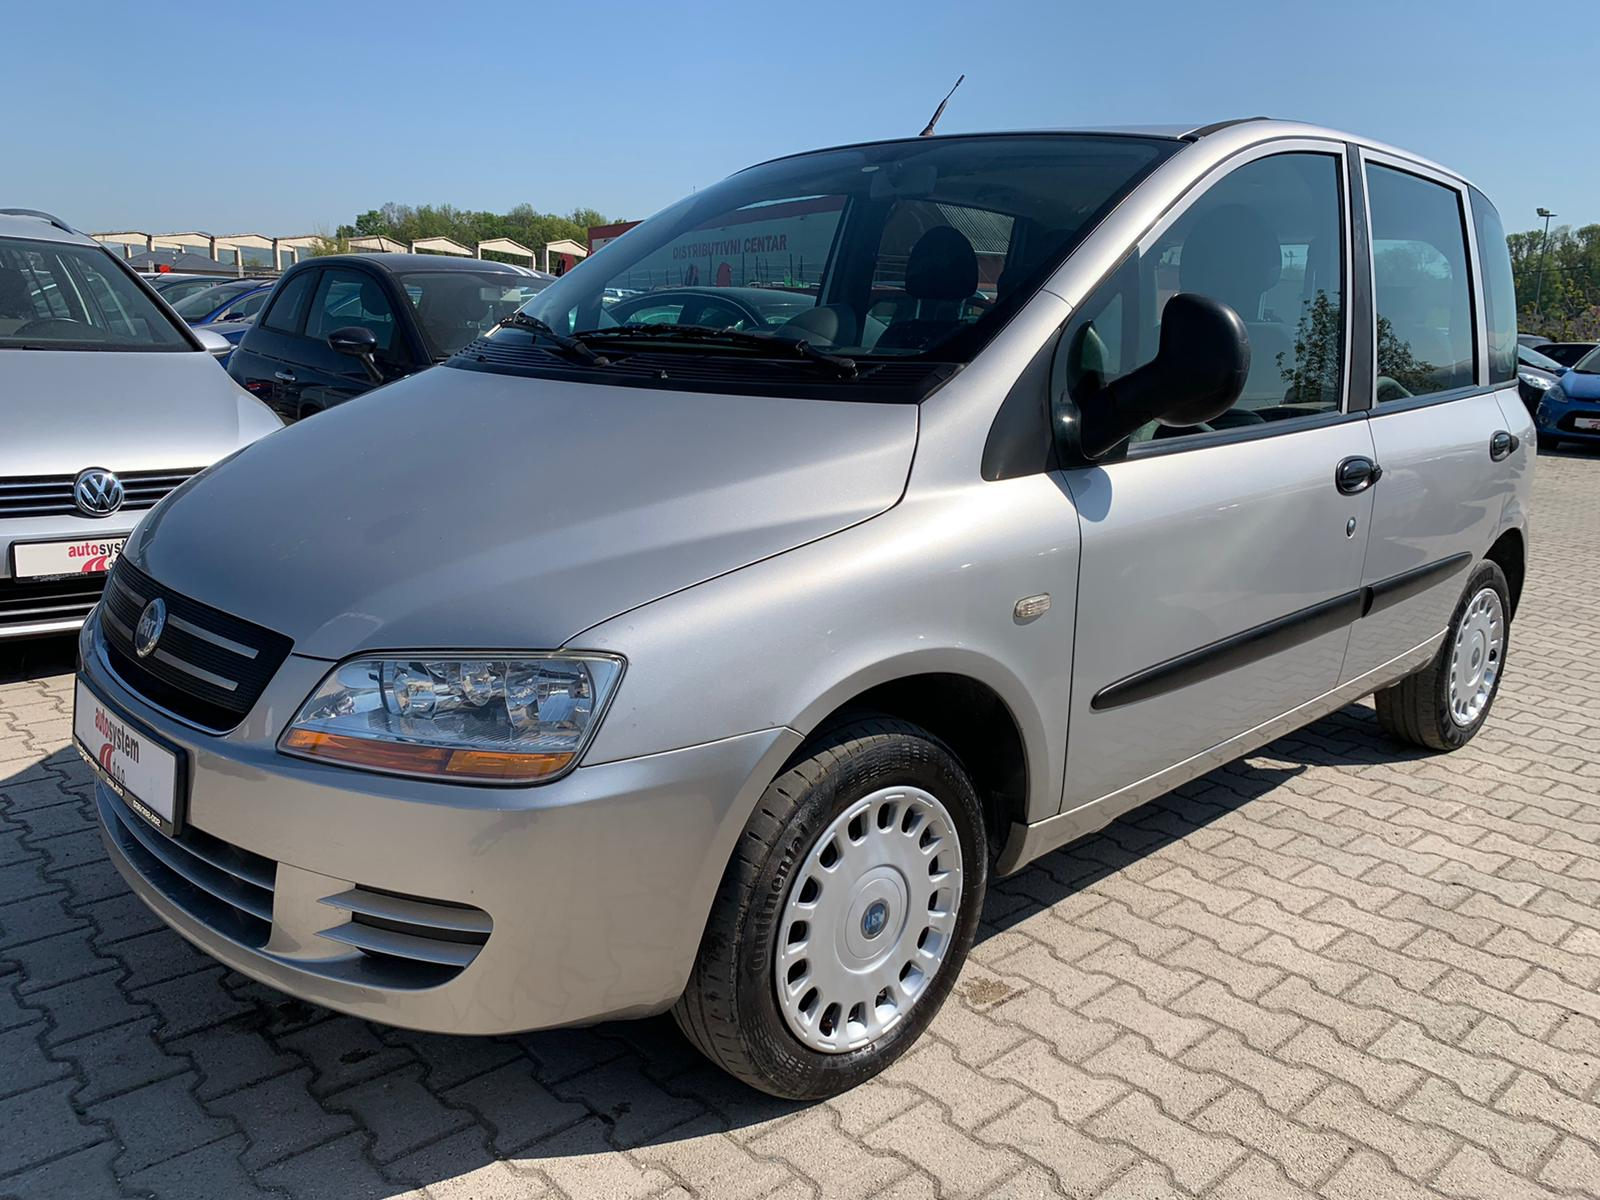 Fiat Multipla 1.6 METAN